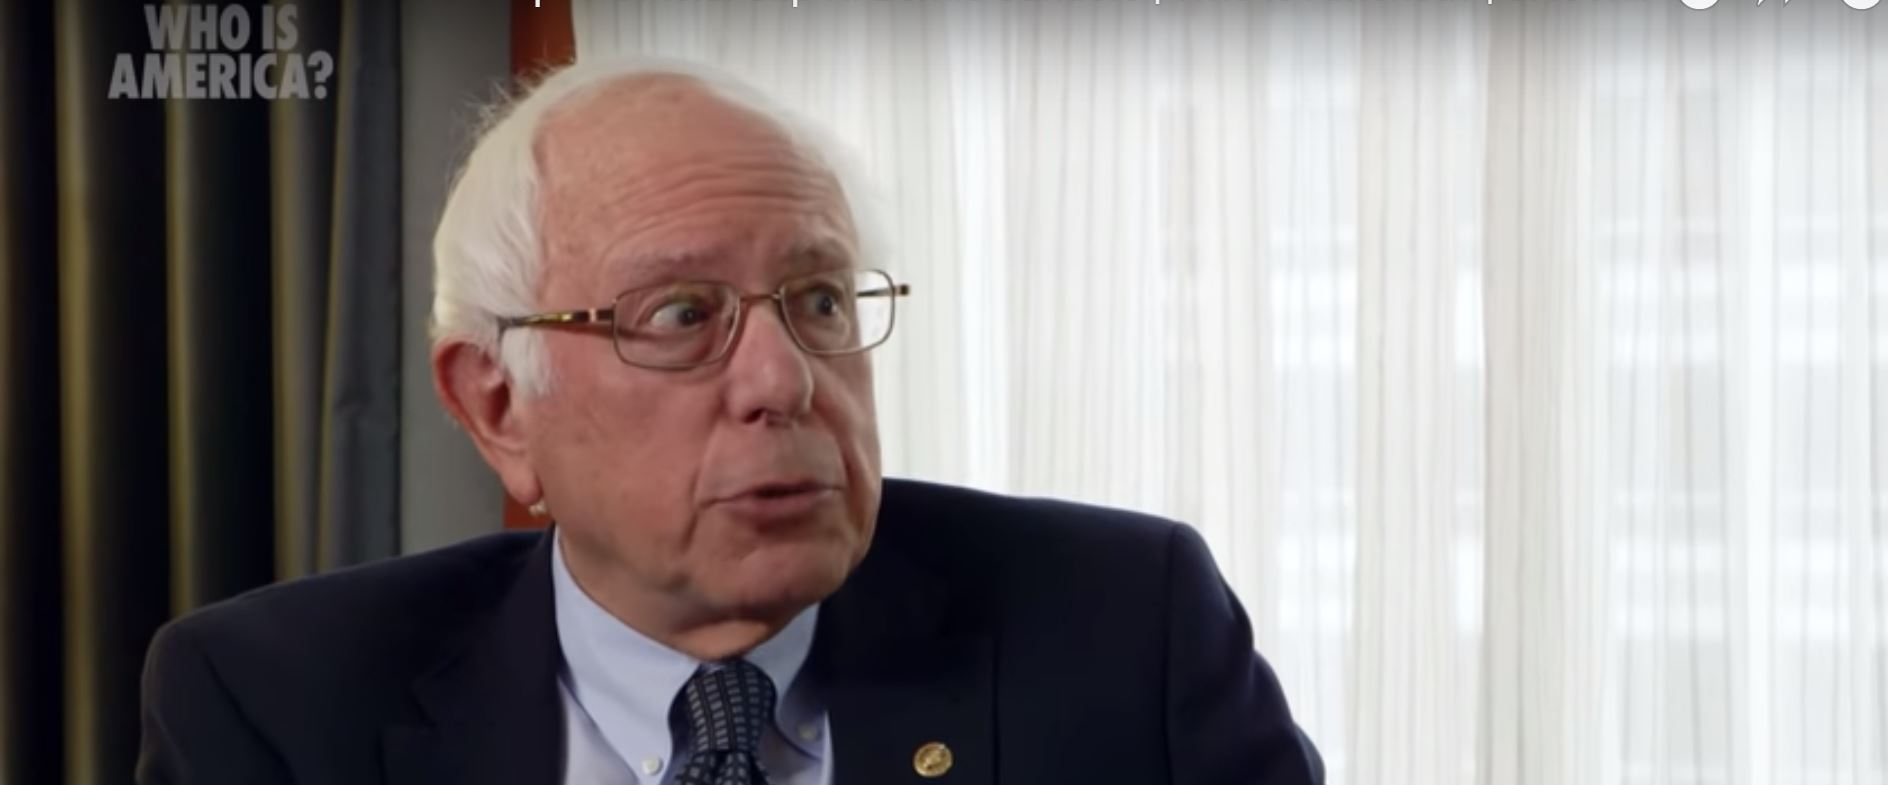 Sanders pulling a face that definitely doesn't suggest 'what the f**k?' Credit: Showtime